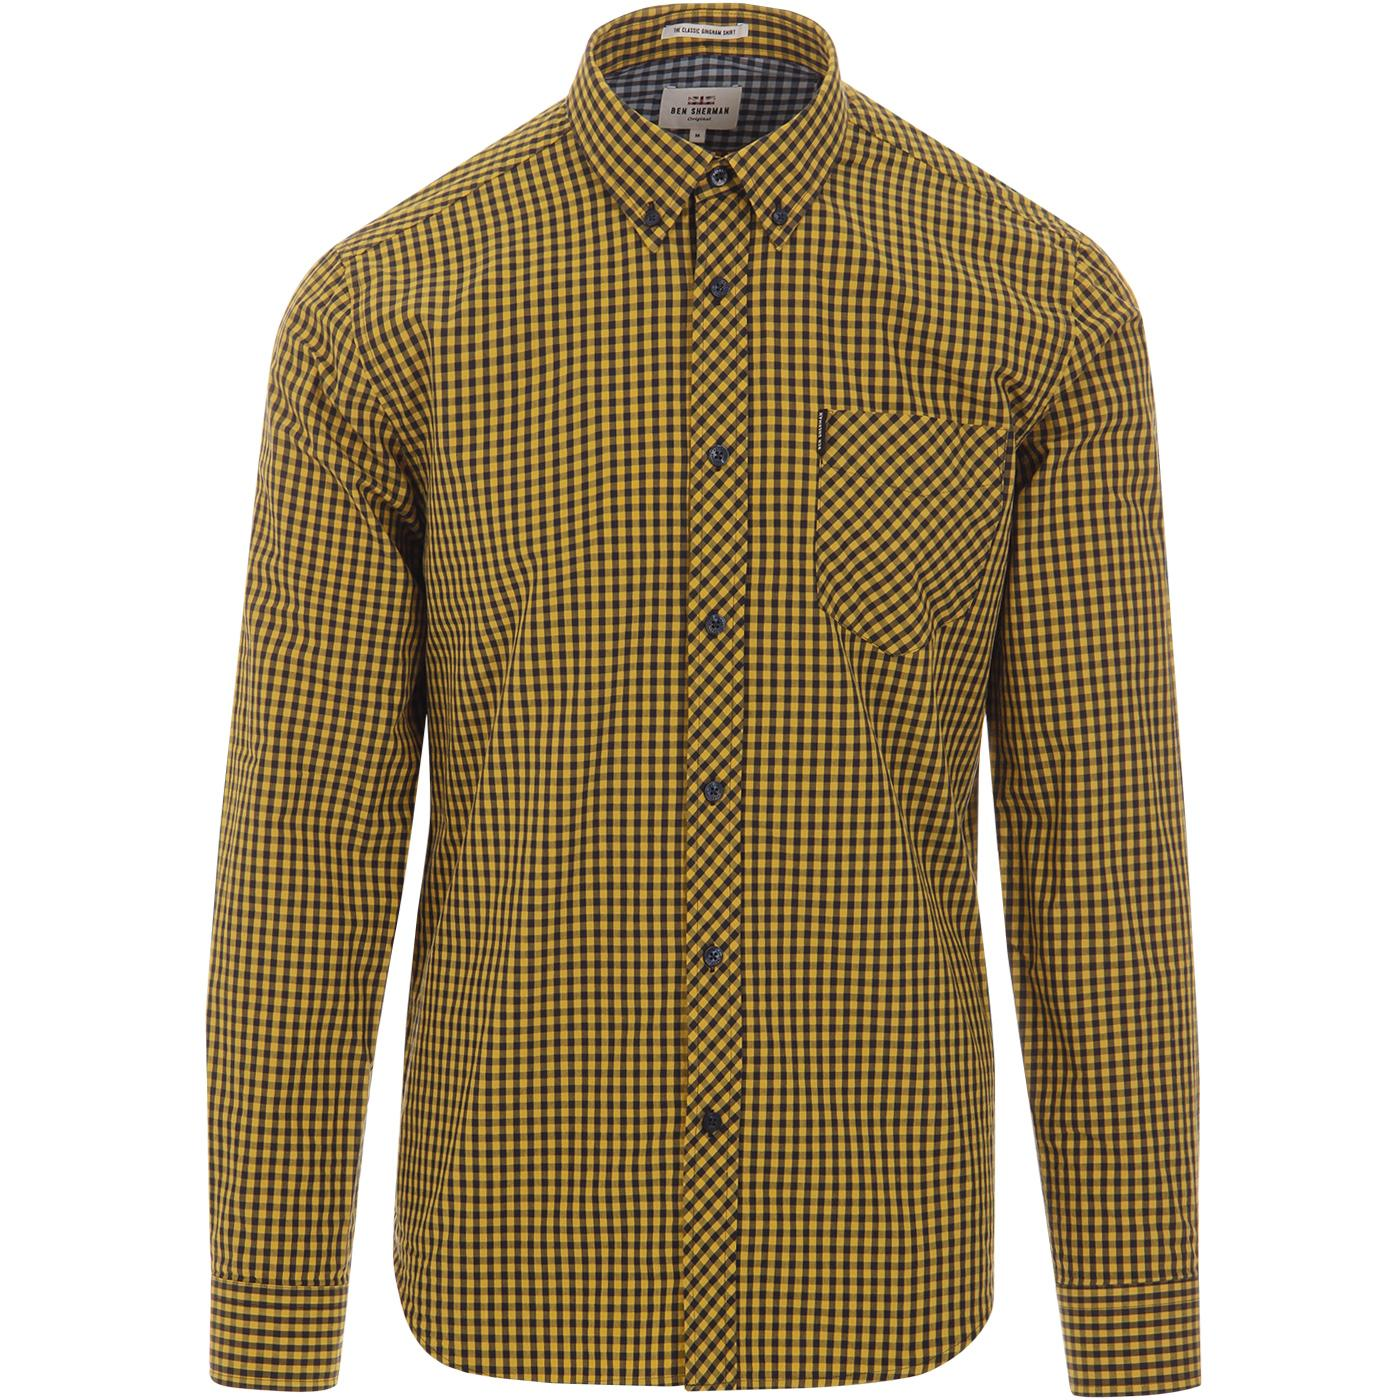 BEN SHERMAN Classic Retro Mod Gingham Check Shirt